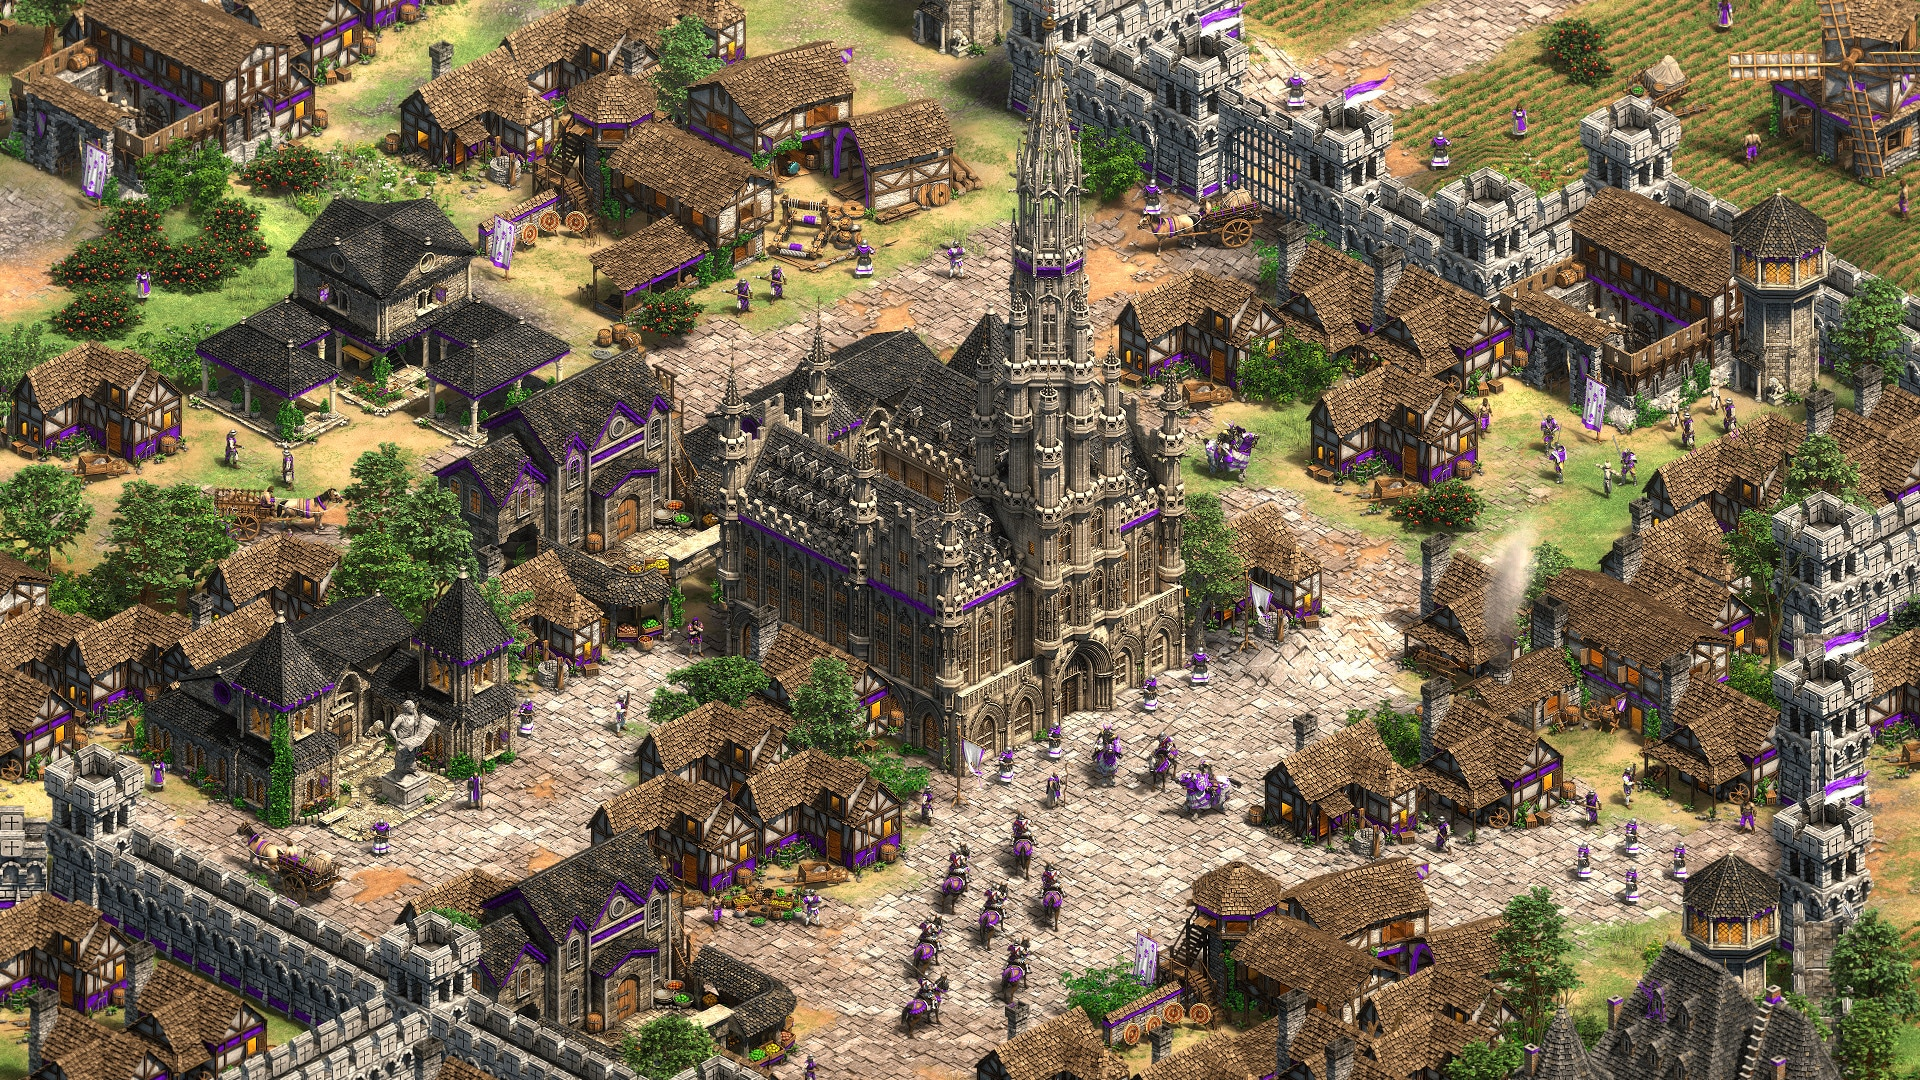 Age of Empires II: Definitive Edition - Lords of the West (PC) - Steam Key - GLOBAL - 2